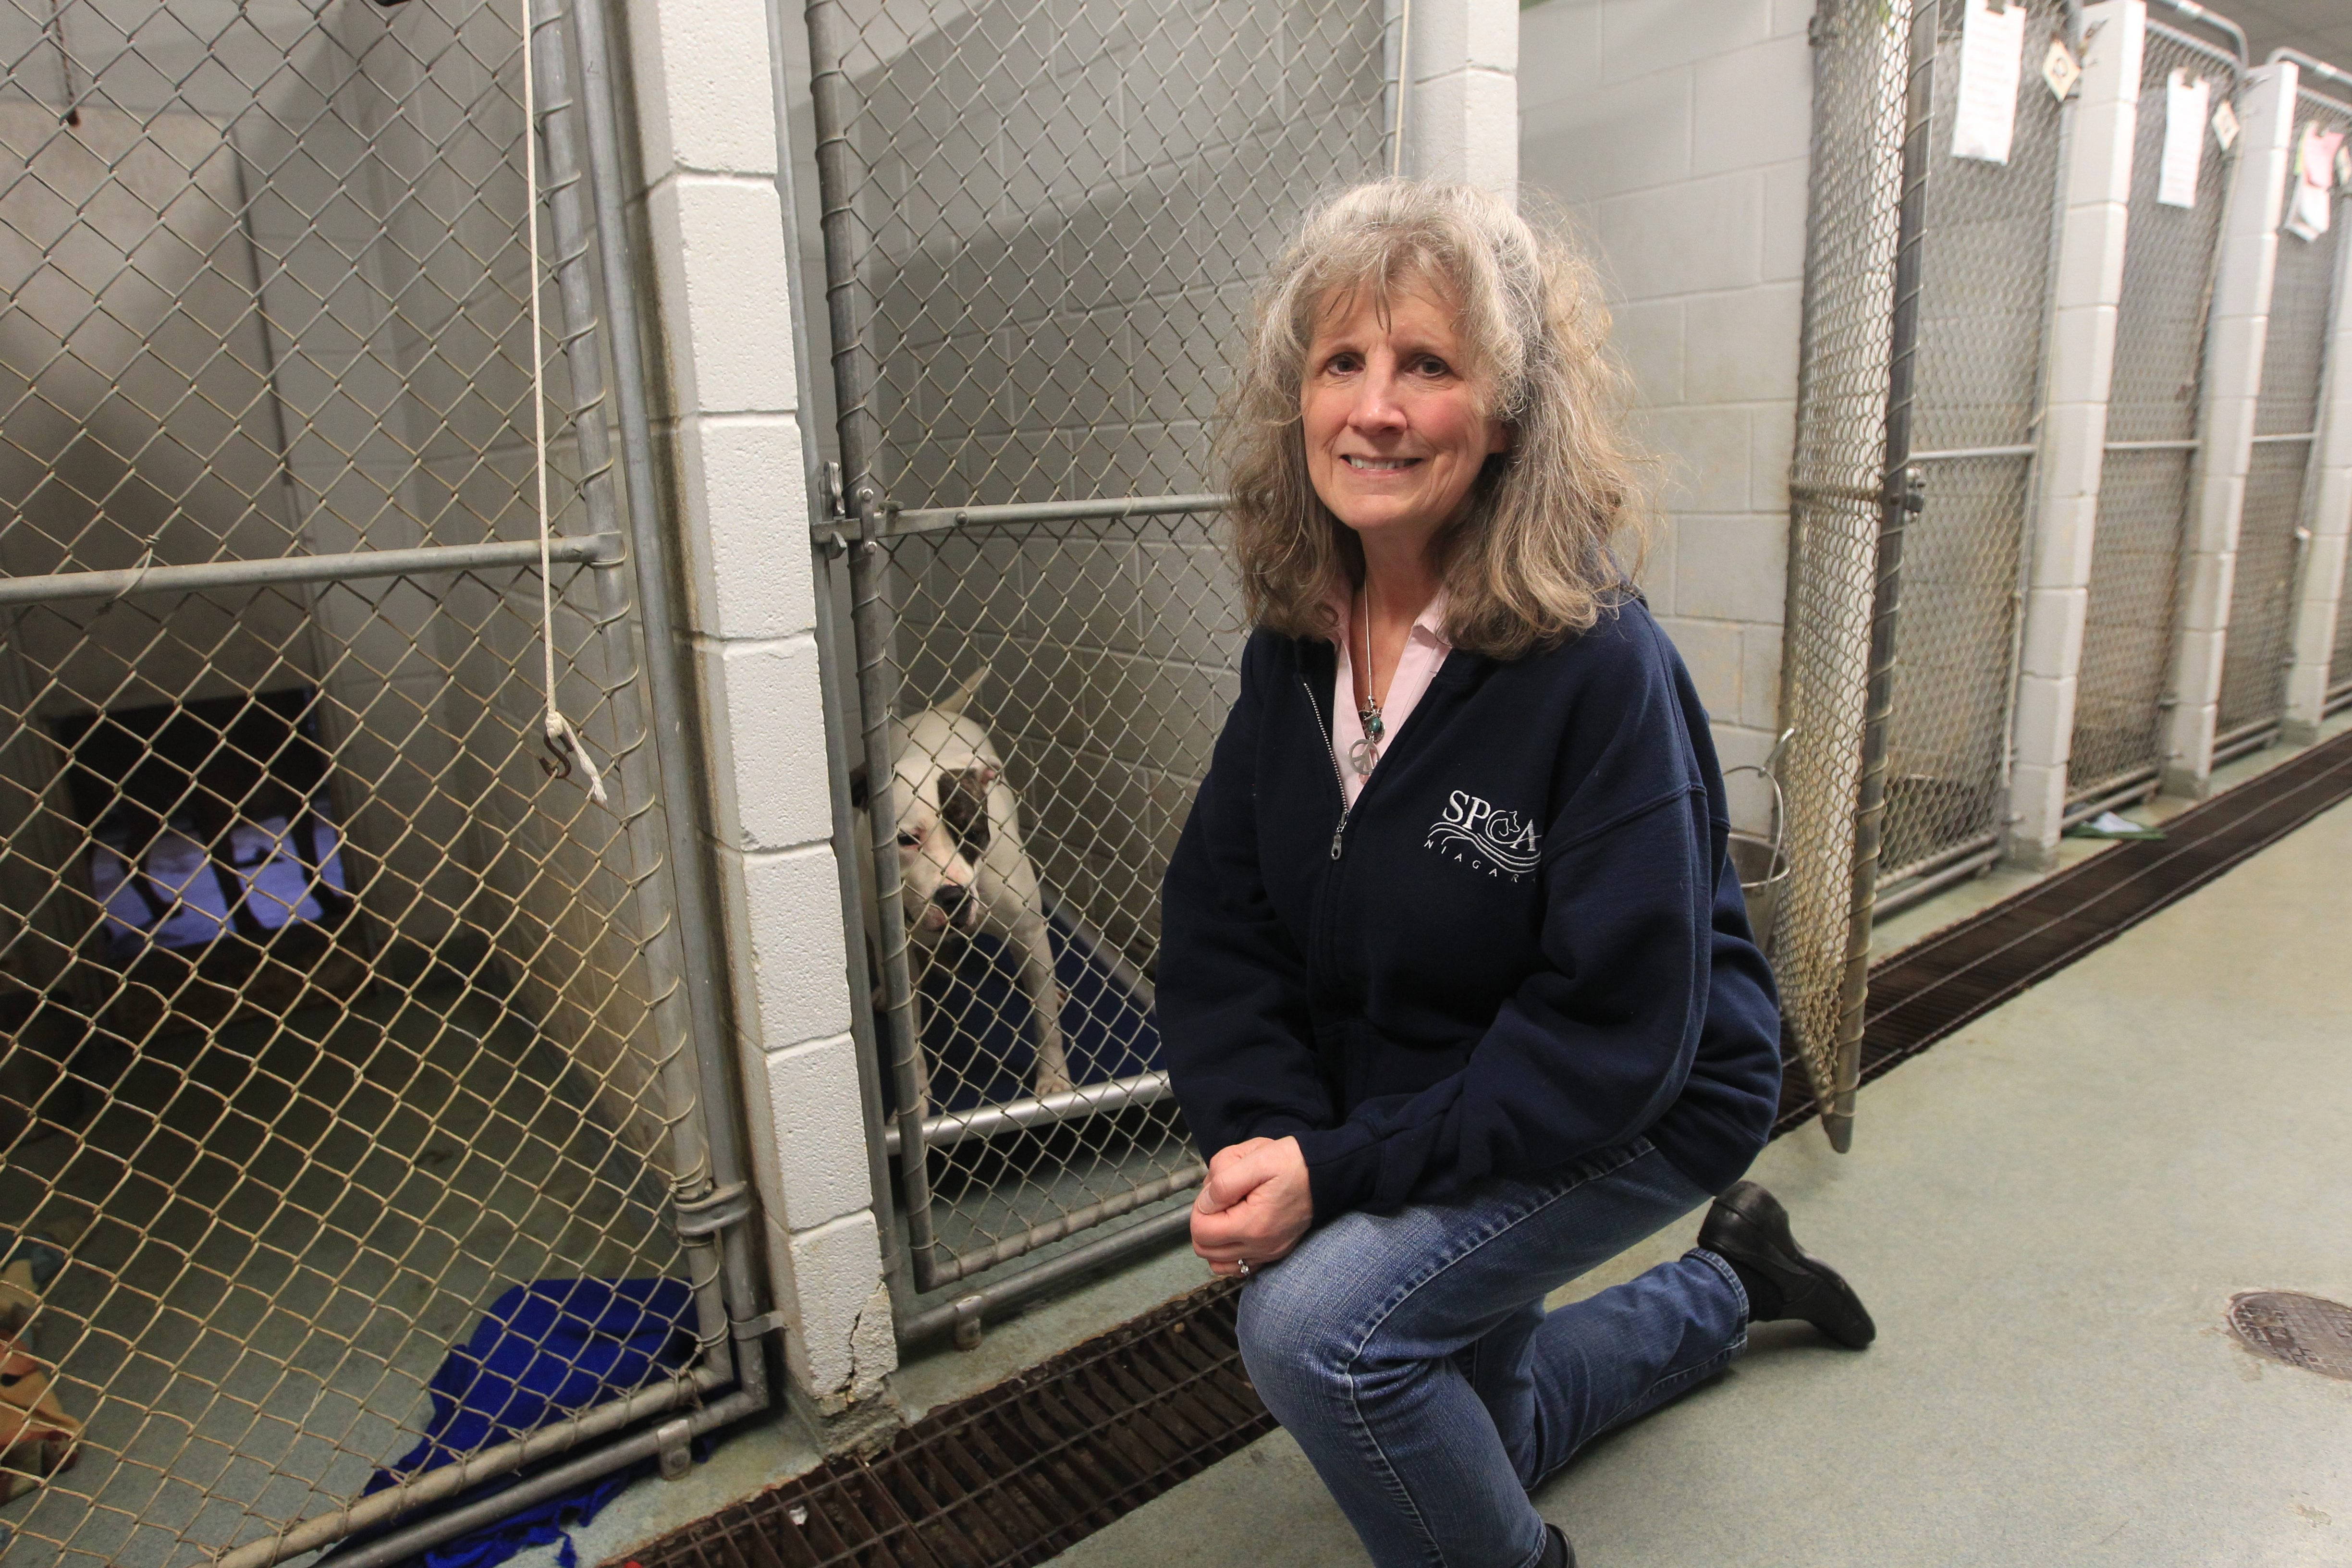 Polla Milligan, director of marketing and development for the Niagara County SPCA, works hard to make sure the shelter can continue to give animals a second chance.